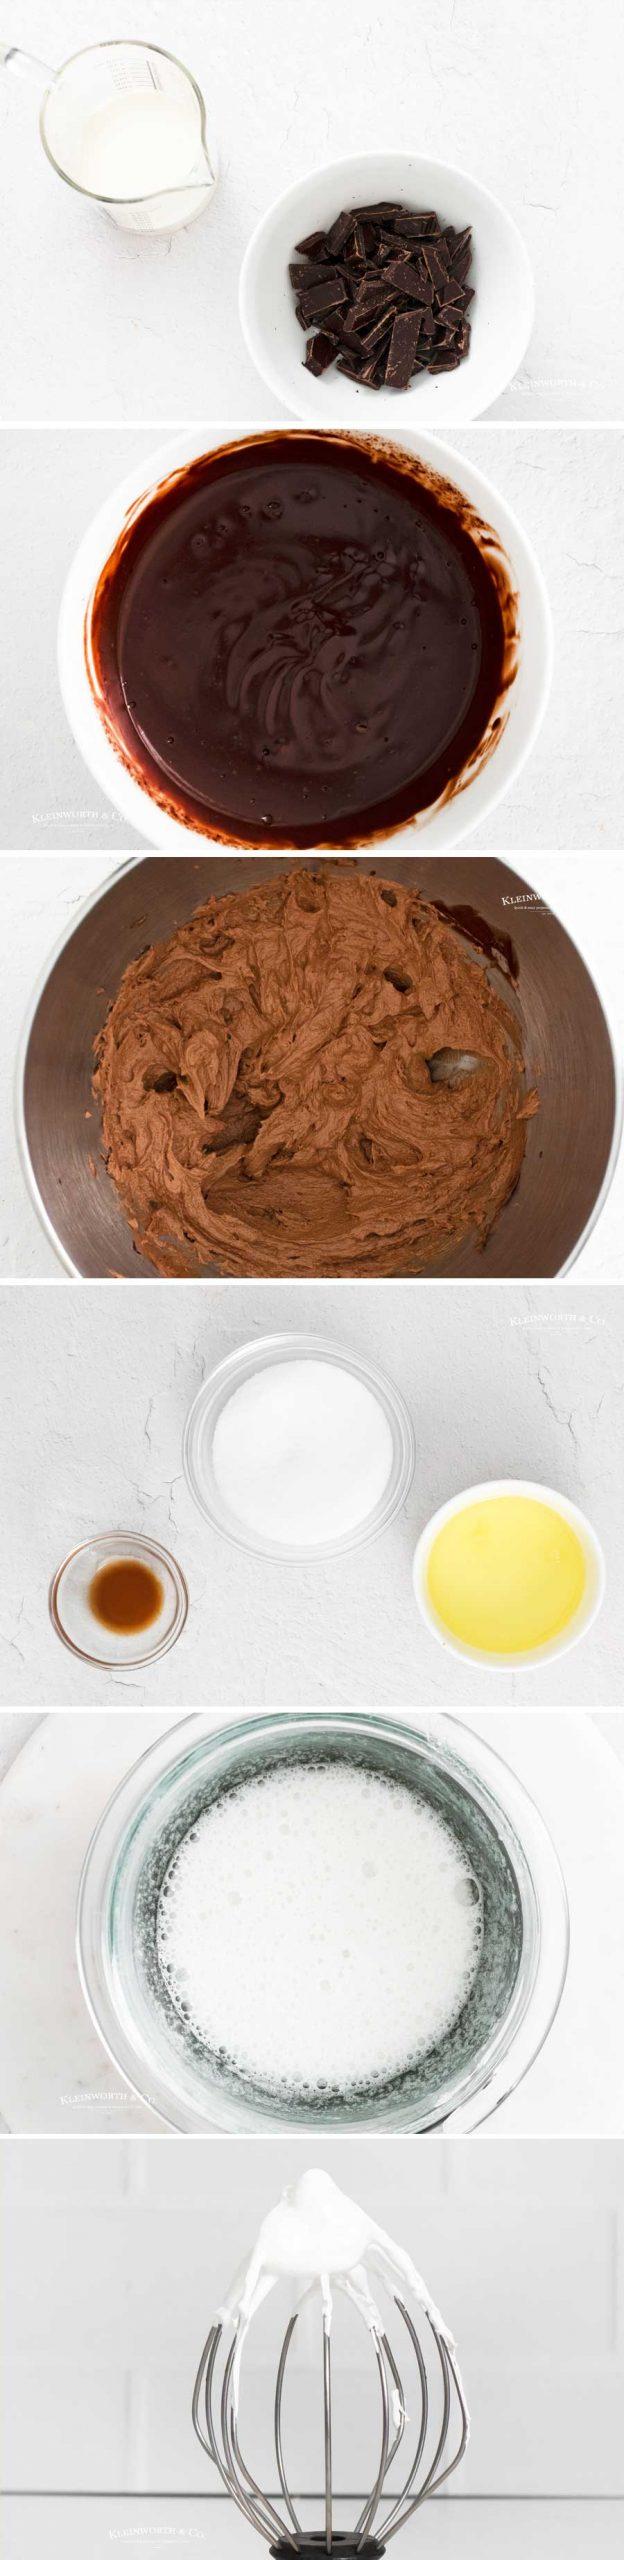 how to make chocolate frosting and marshmallow meringue